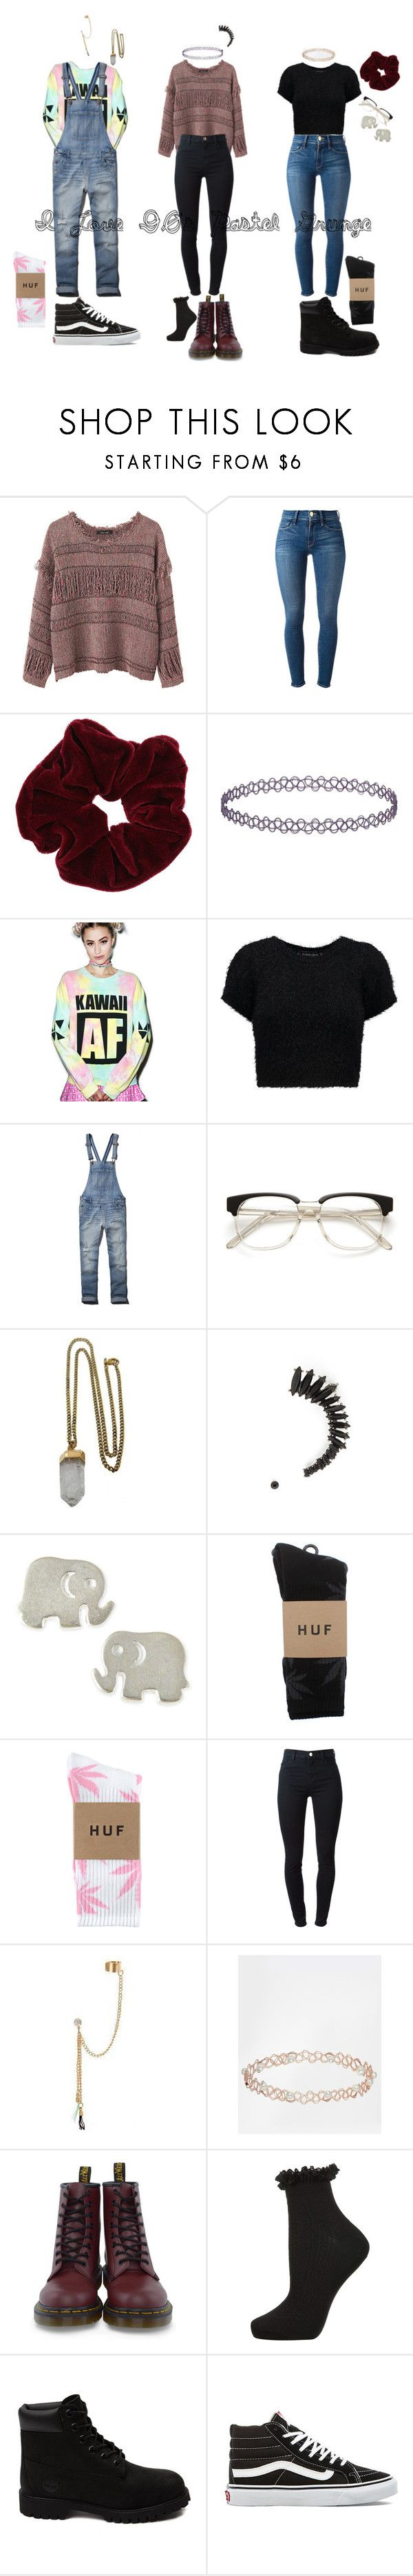 """90s Grunge school outfits"" by stellaluna899 ❤ liked on Polyvore featuring Isabel Marant, Frame, Miss Selfridge, Topshop, MYVL, even&odd, Abercrombie & Fitch, Lacey Ryan, Adia Kibur and Dogeared"